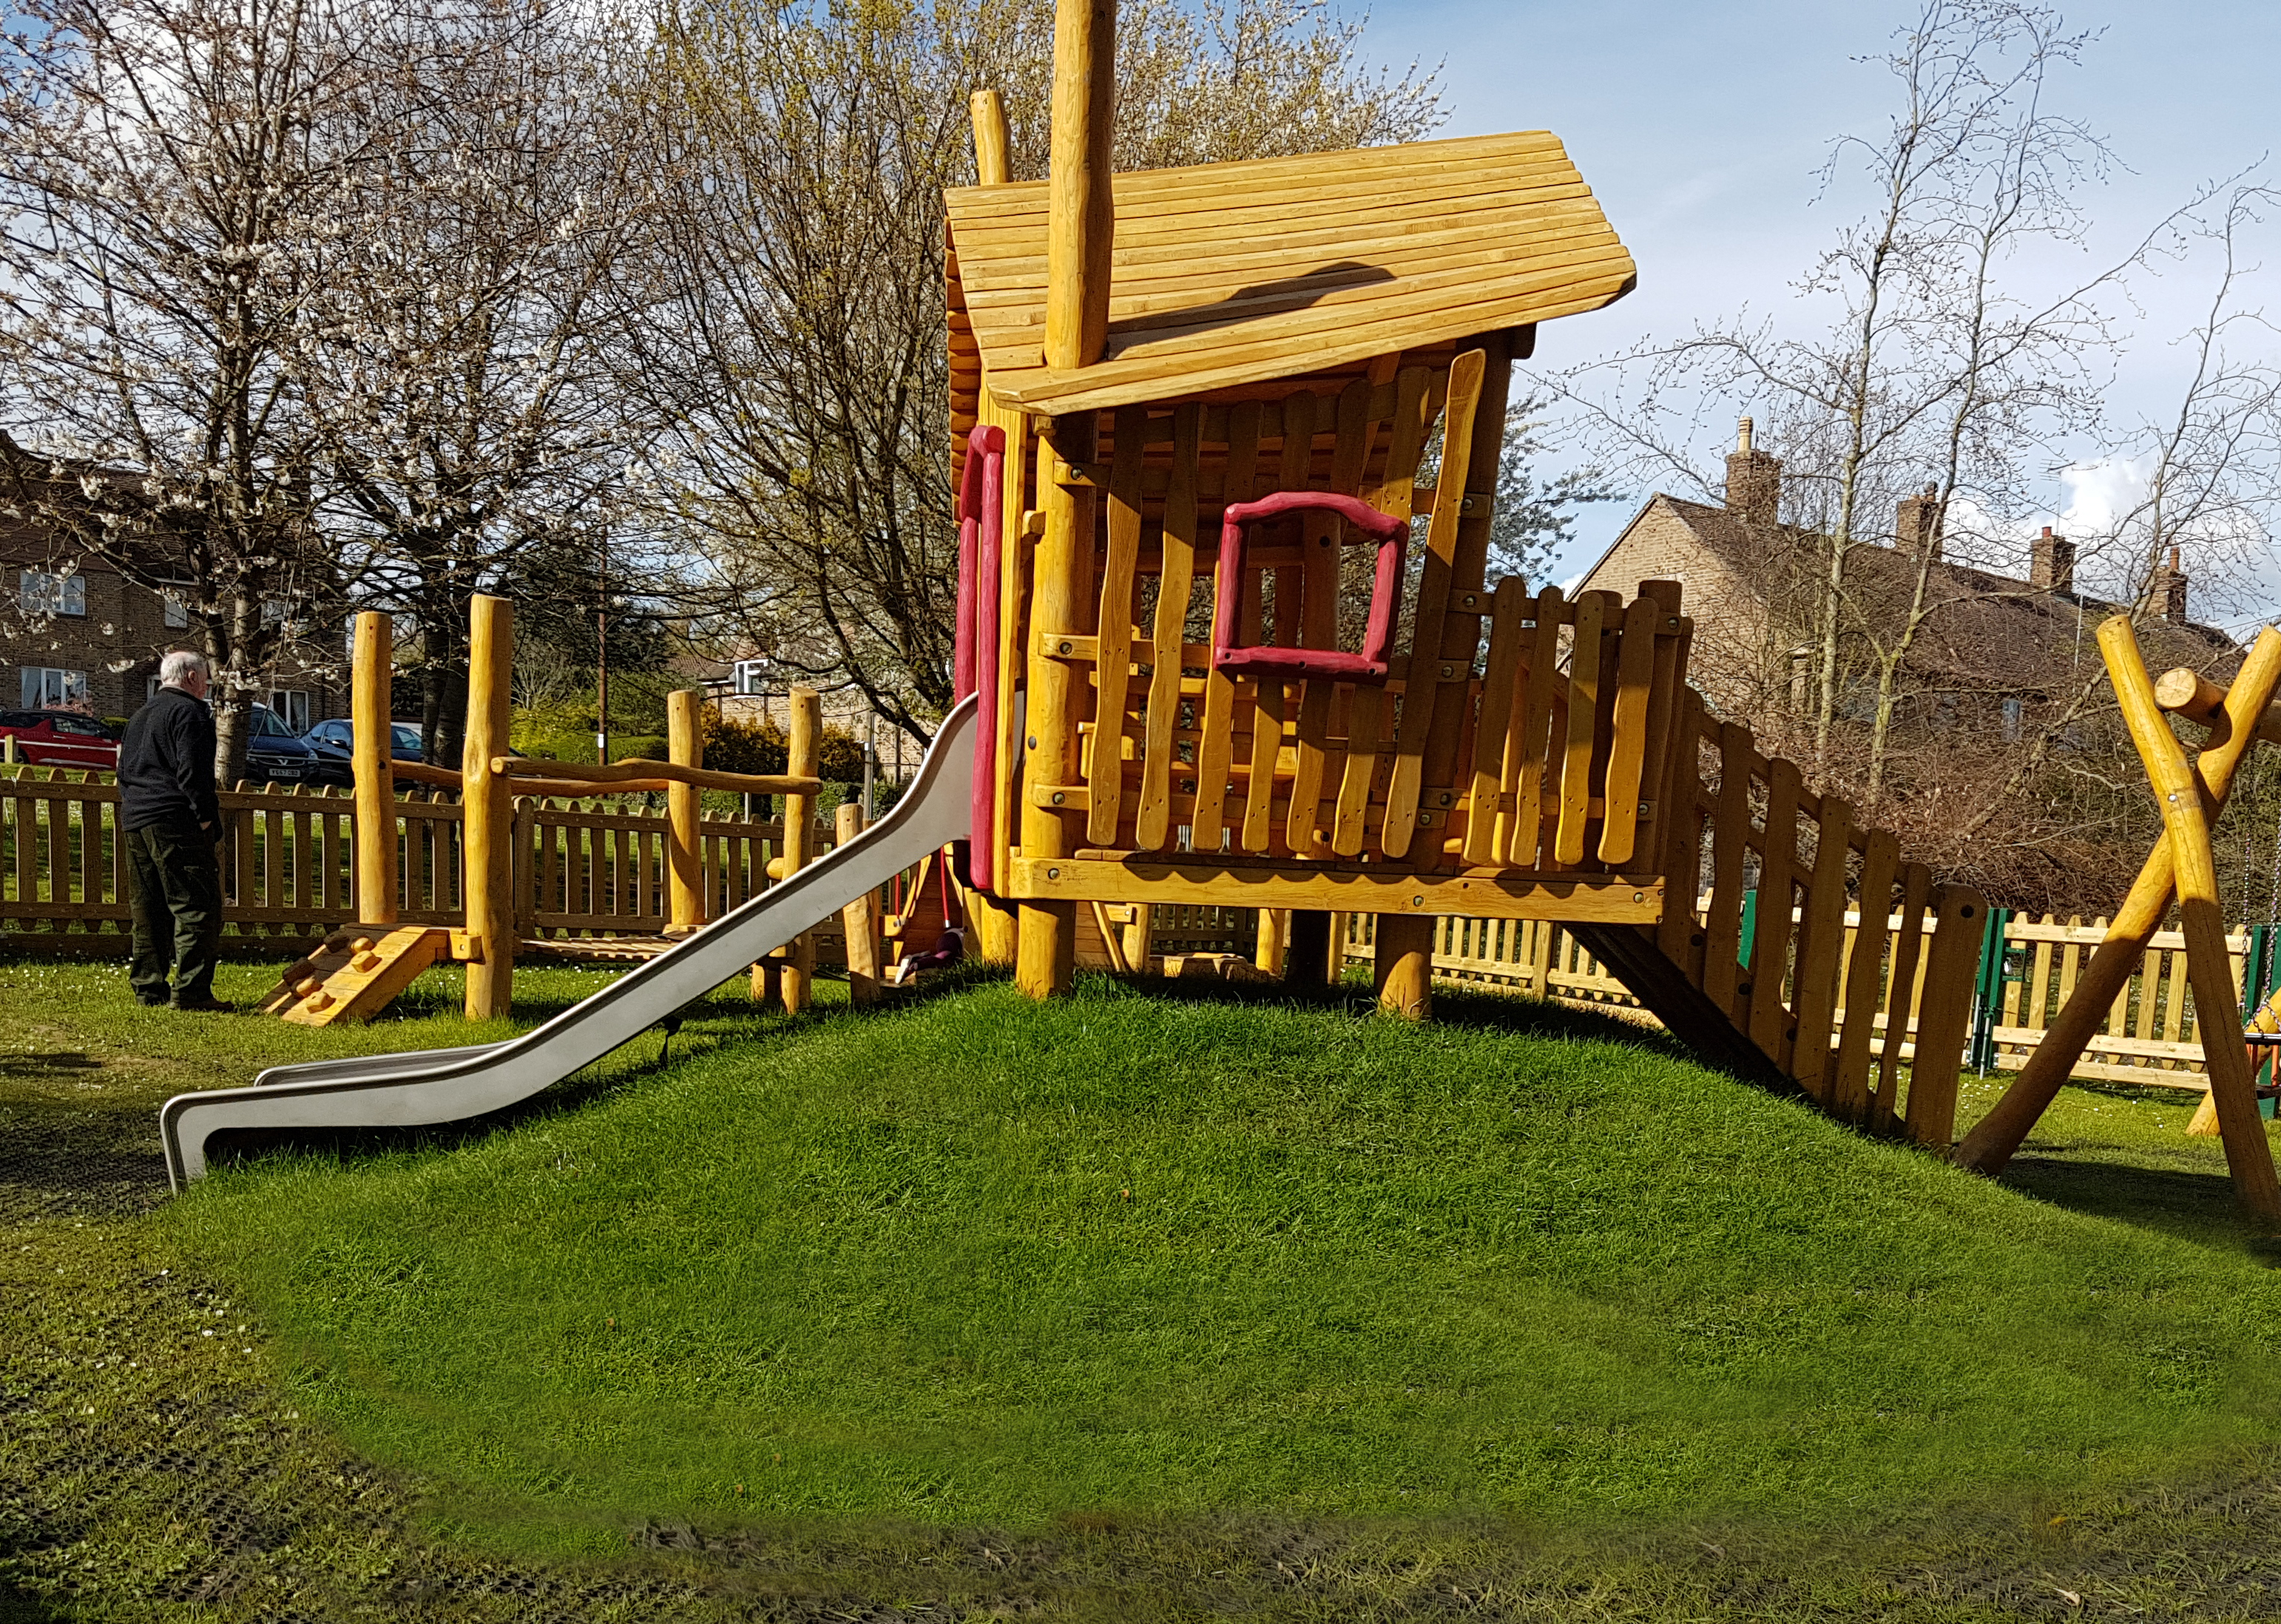 Wansford Play area, Play train for toddlers - Imaginative Play